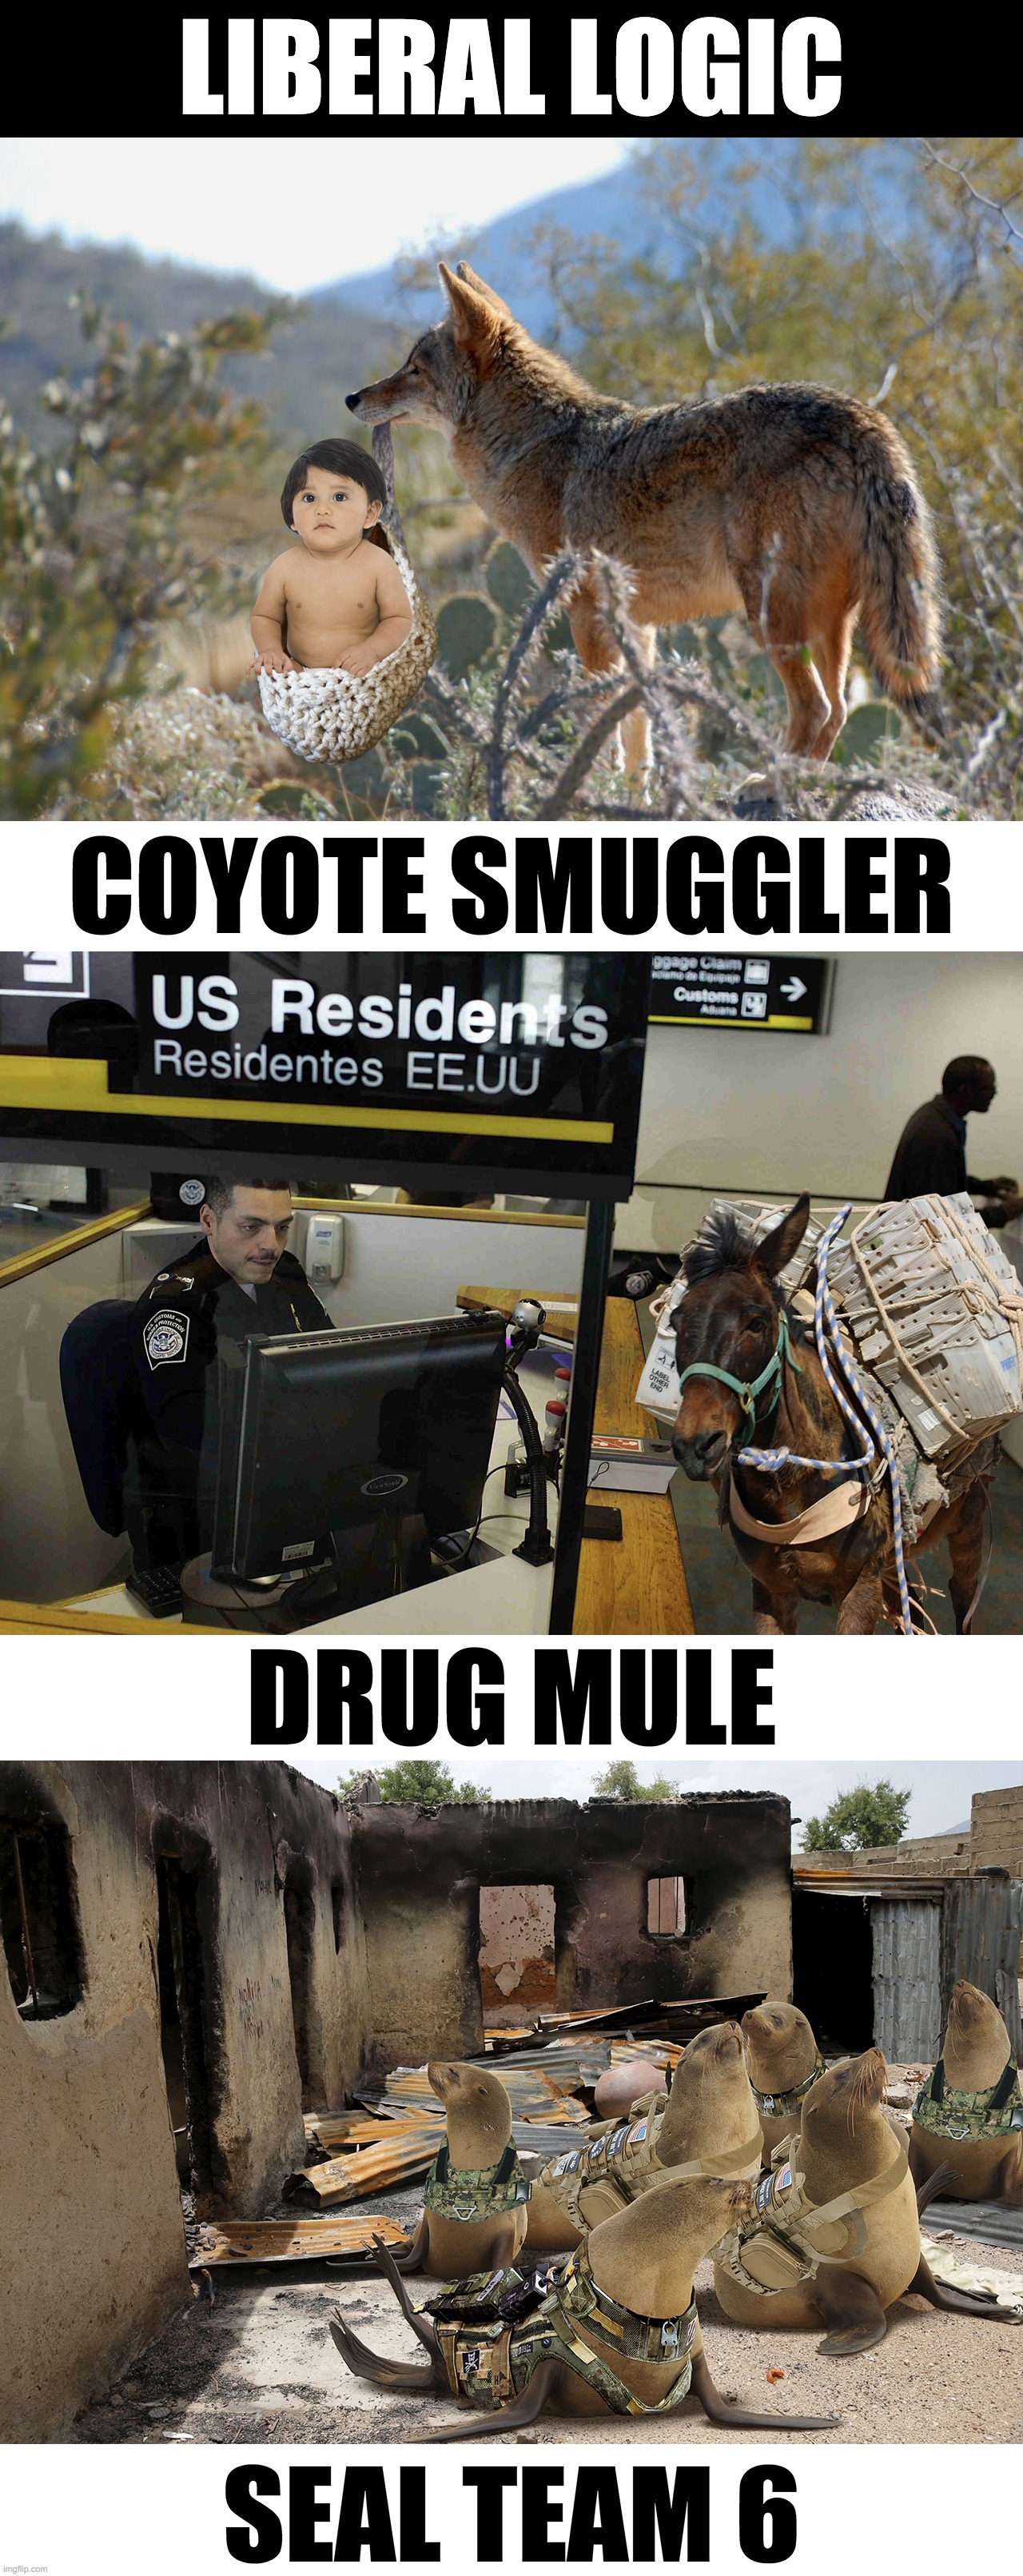 Liberal - College Liberal: Image Gallery | Know Your Meme ...